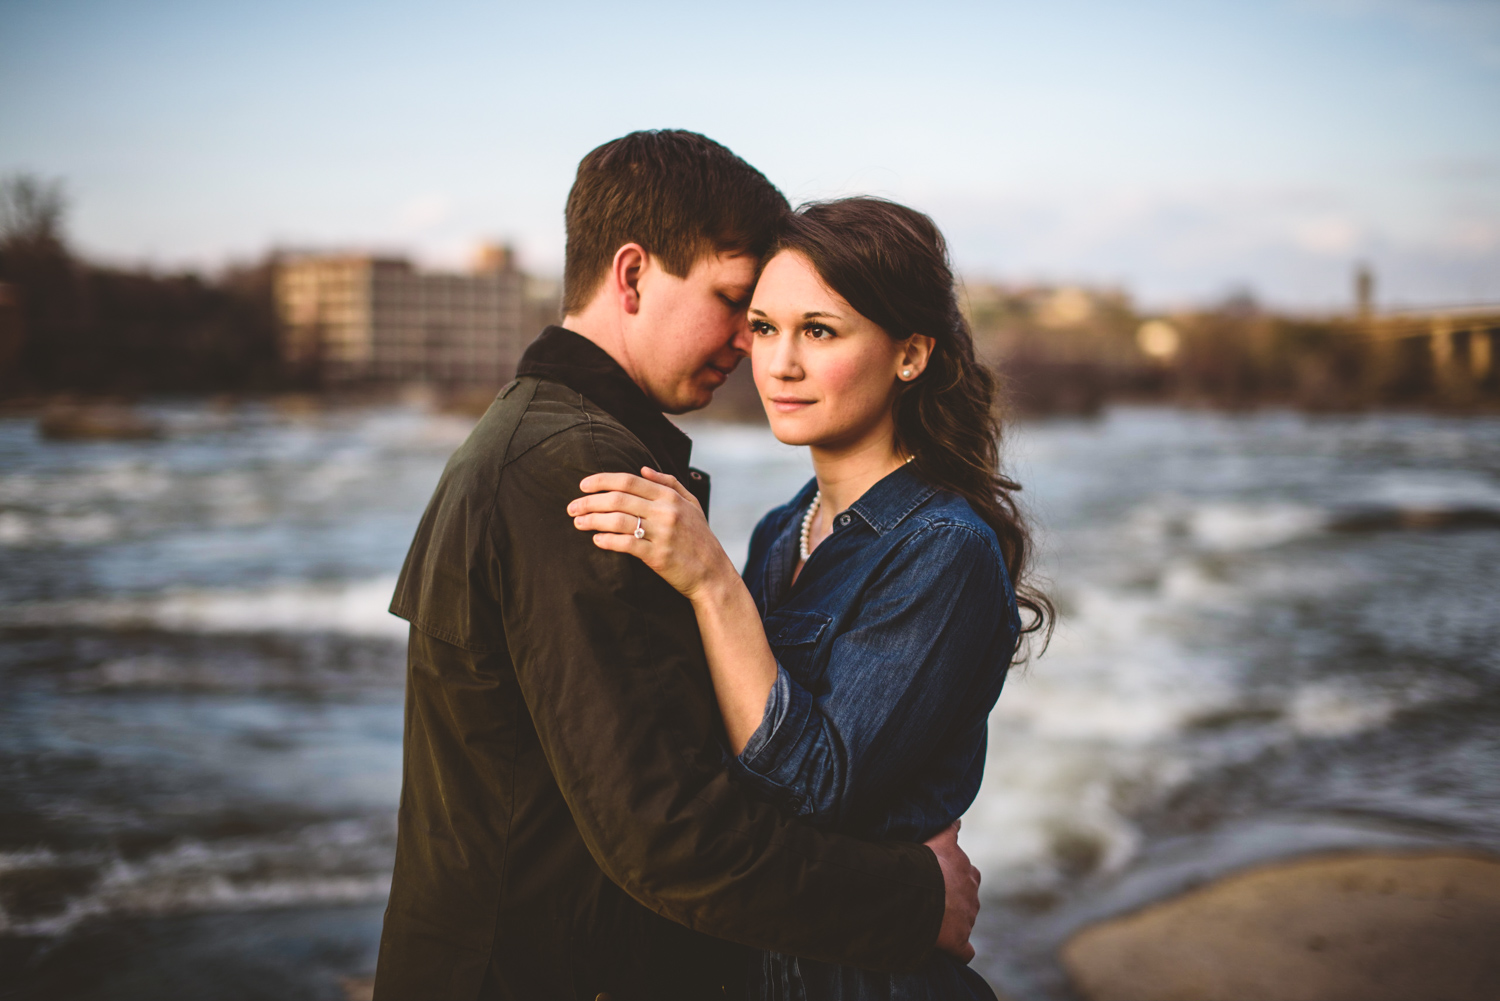 004 - woman looking into sunset while man holds her engagement session.jpg